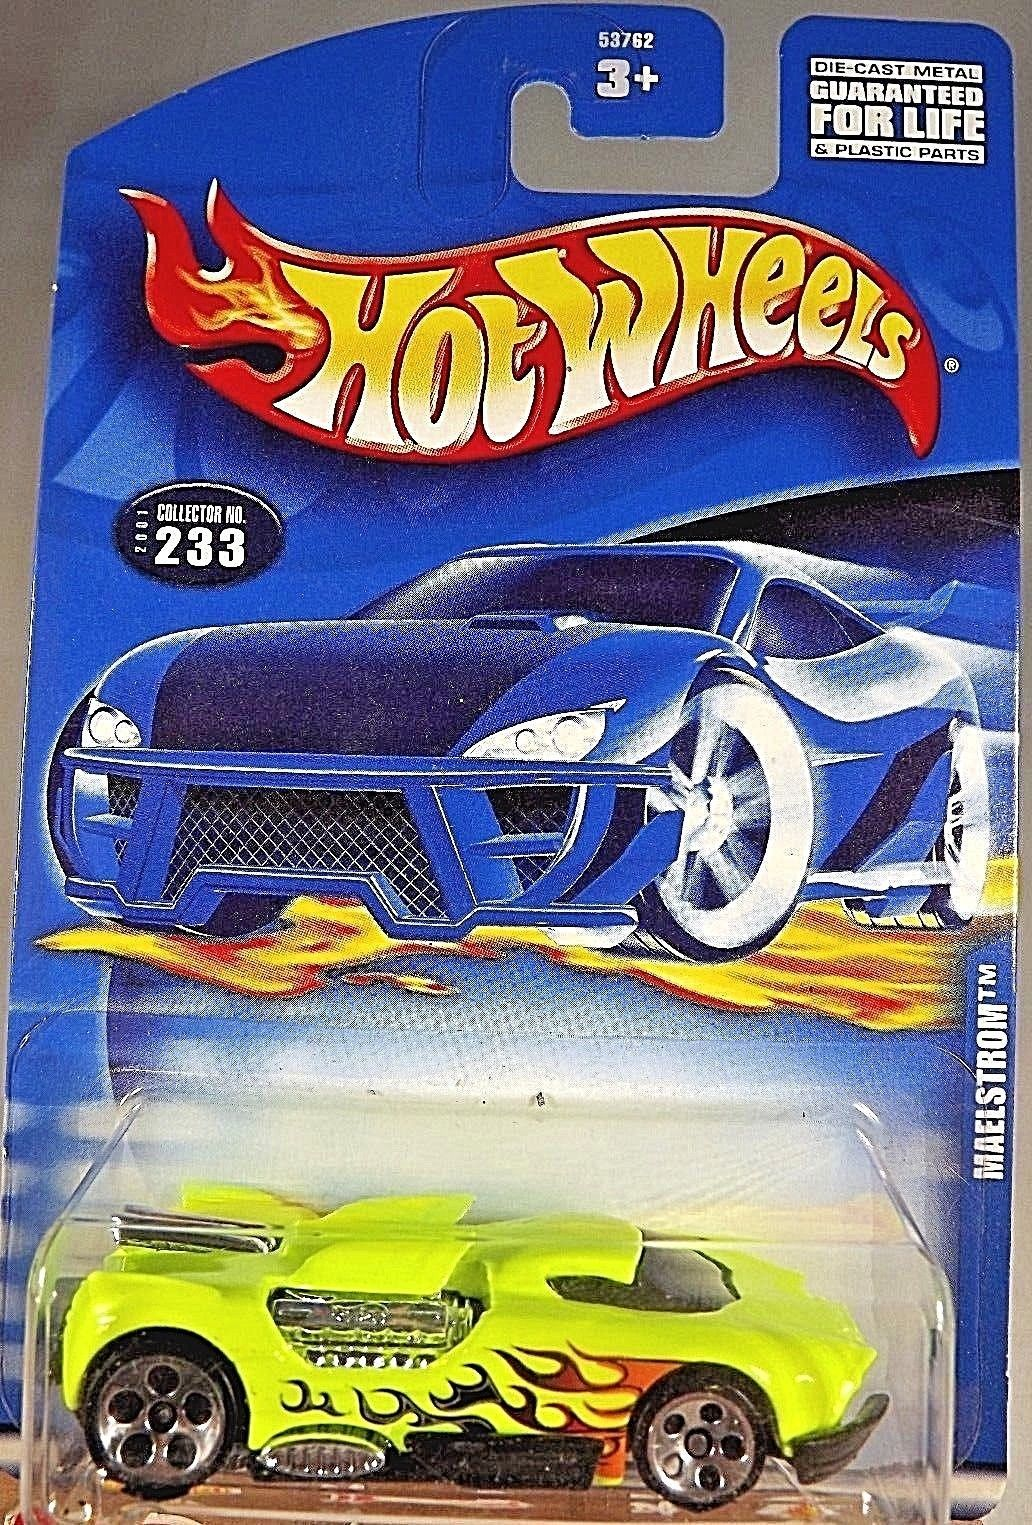 Primary image for 2001 Hot Wheels Collector No #233 MAELSTROM Lime w/5 Hole Spoke - Malaysia Base